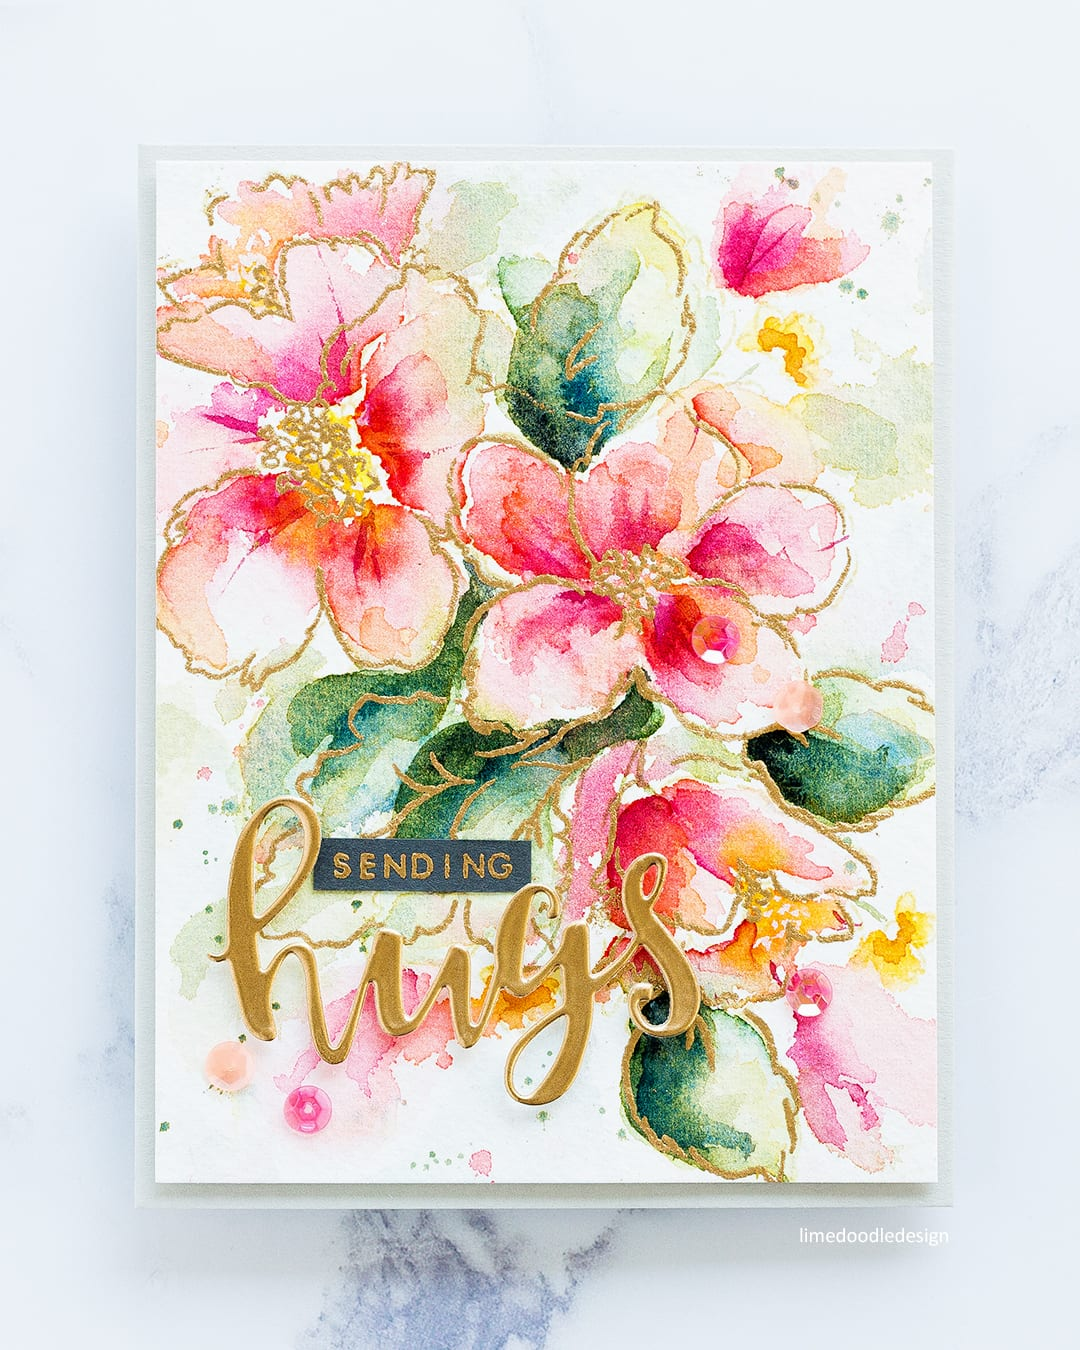 Watercoloured Hibiscus handmade card by Debby Hughes using the Altenew Hibiscus Burst stamp set and Rose Gold embossing powder. Find out more here: http://limedoodledesign.com/2017/10/altenew-october-2017-release-blog-hop-giveaway/